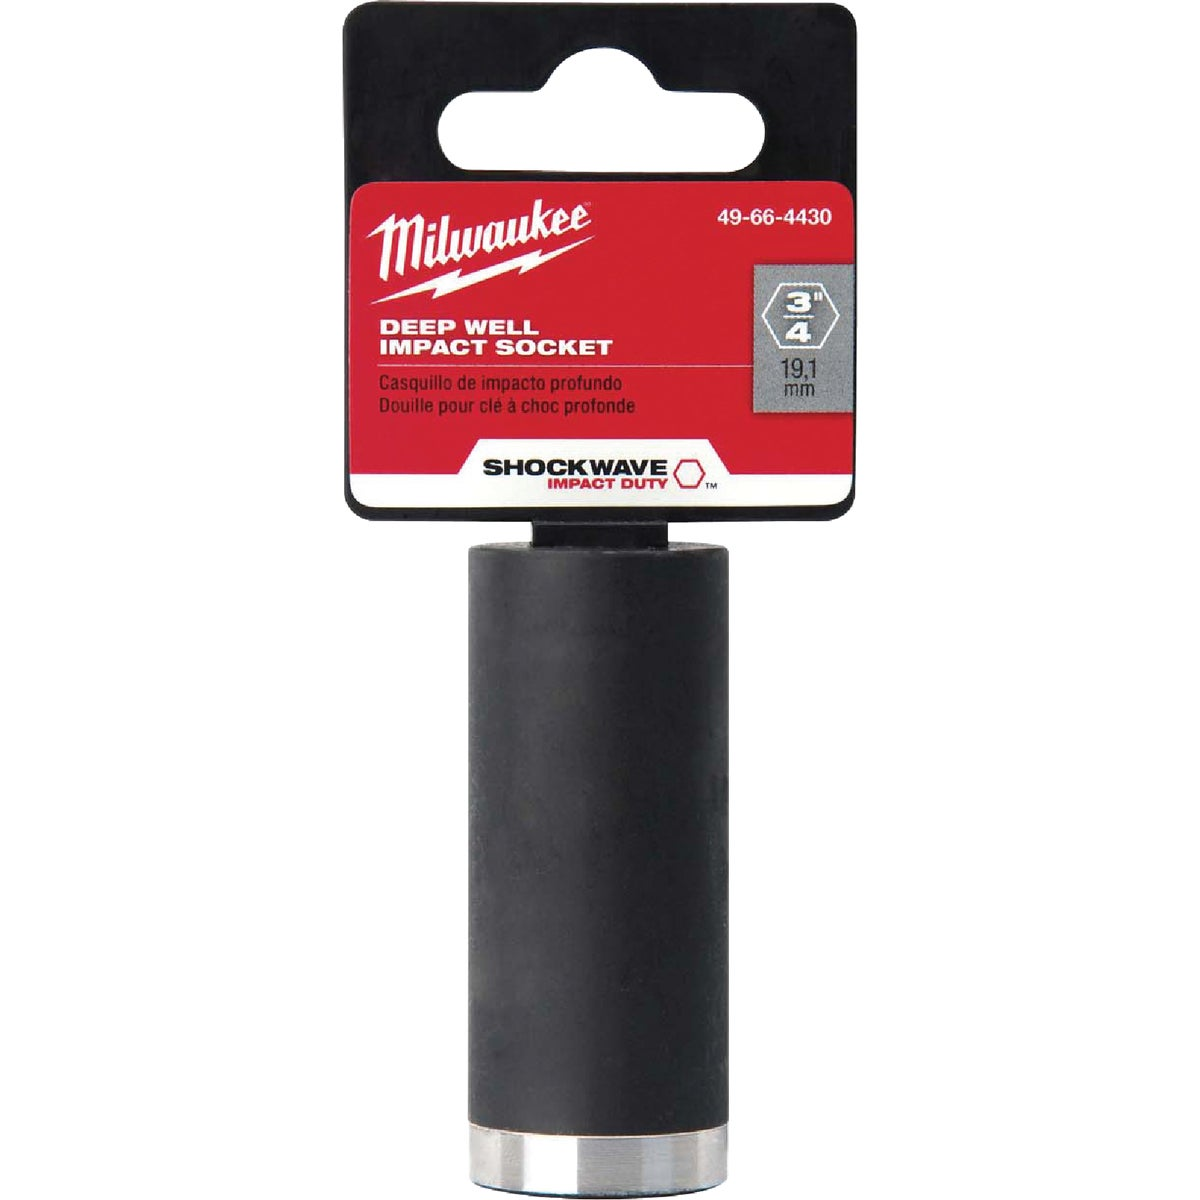 "3/8""DR 5/8"" IMPCT SOCKET - 49-66-4428 by Milwaukee Accessory"